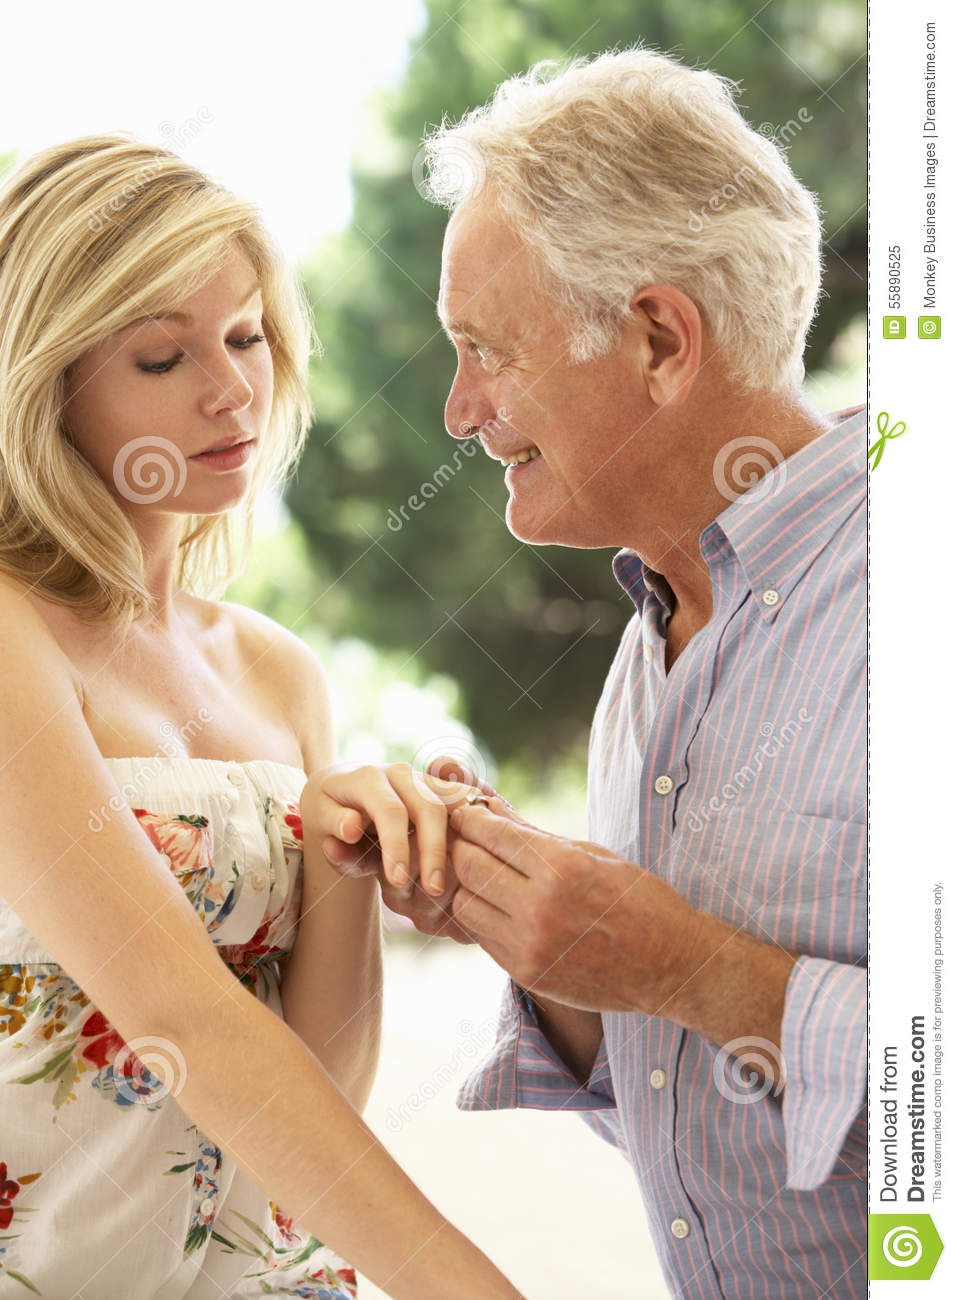 Man dates older woman why younger 9 Reasons